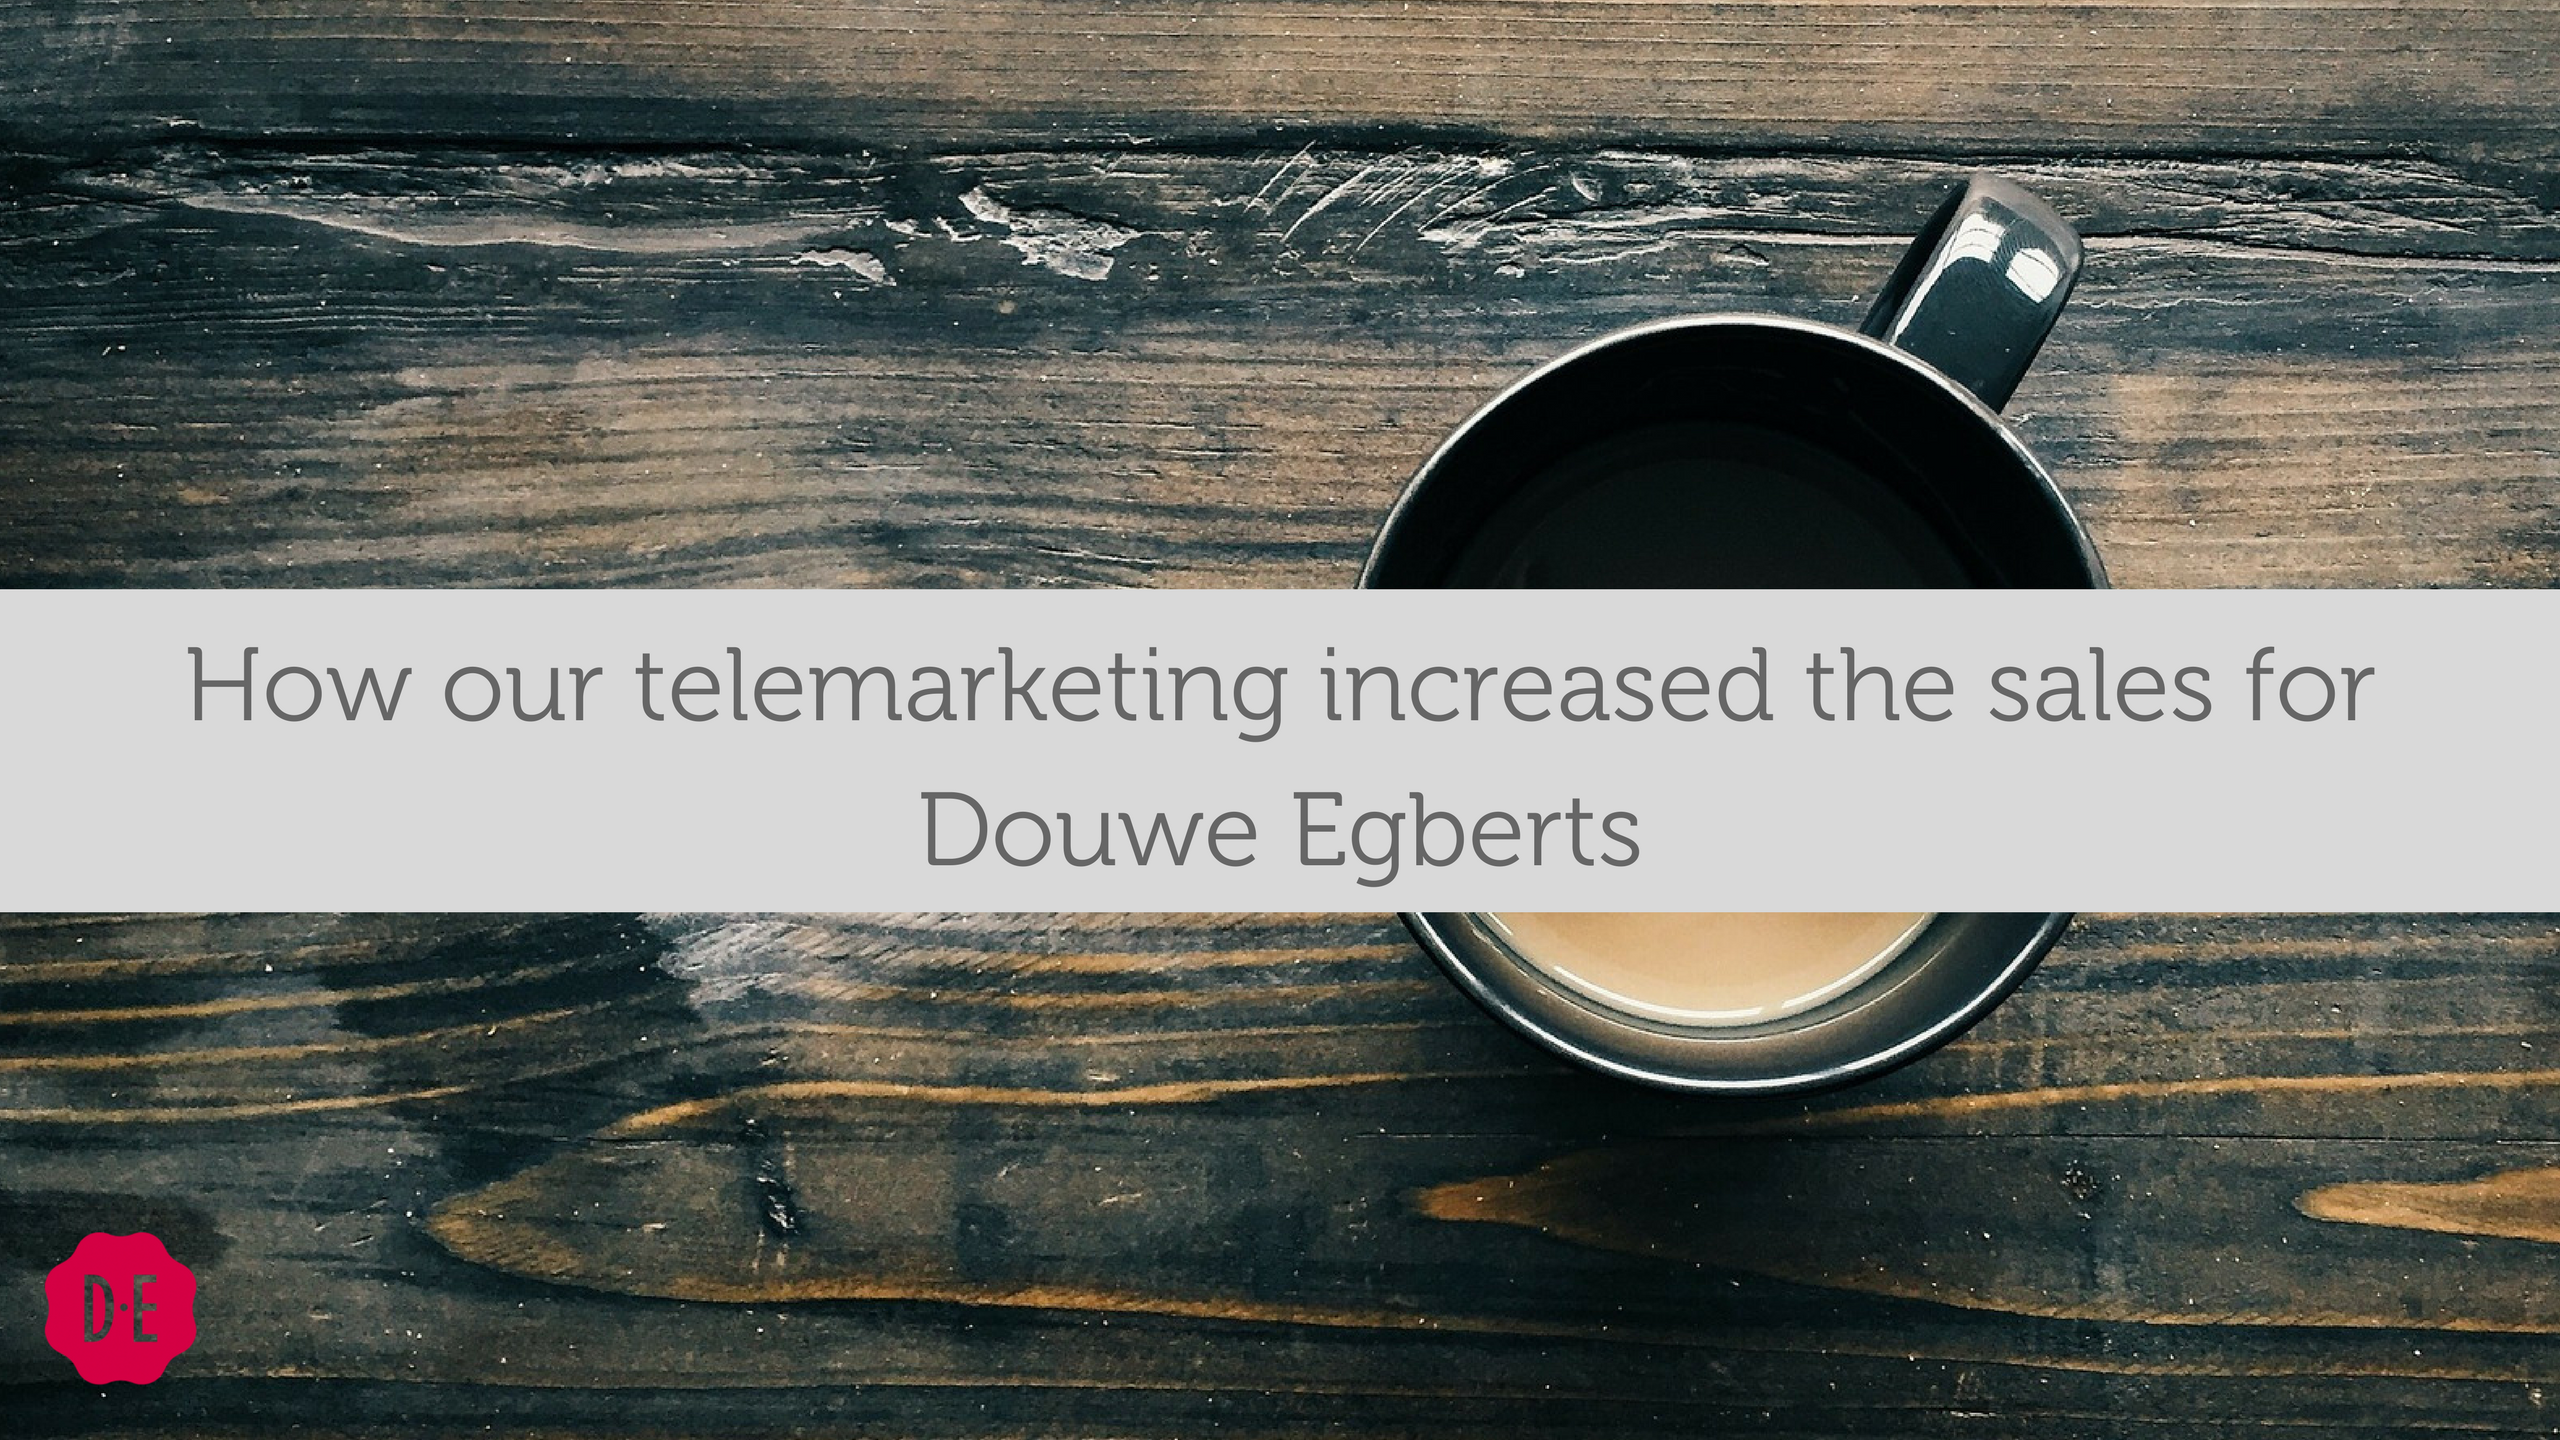 Douwe Egberts Telemarketing